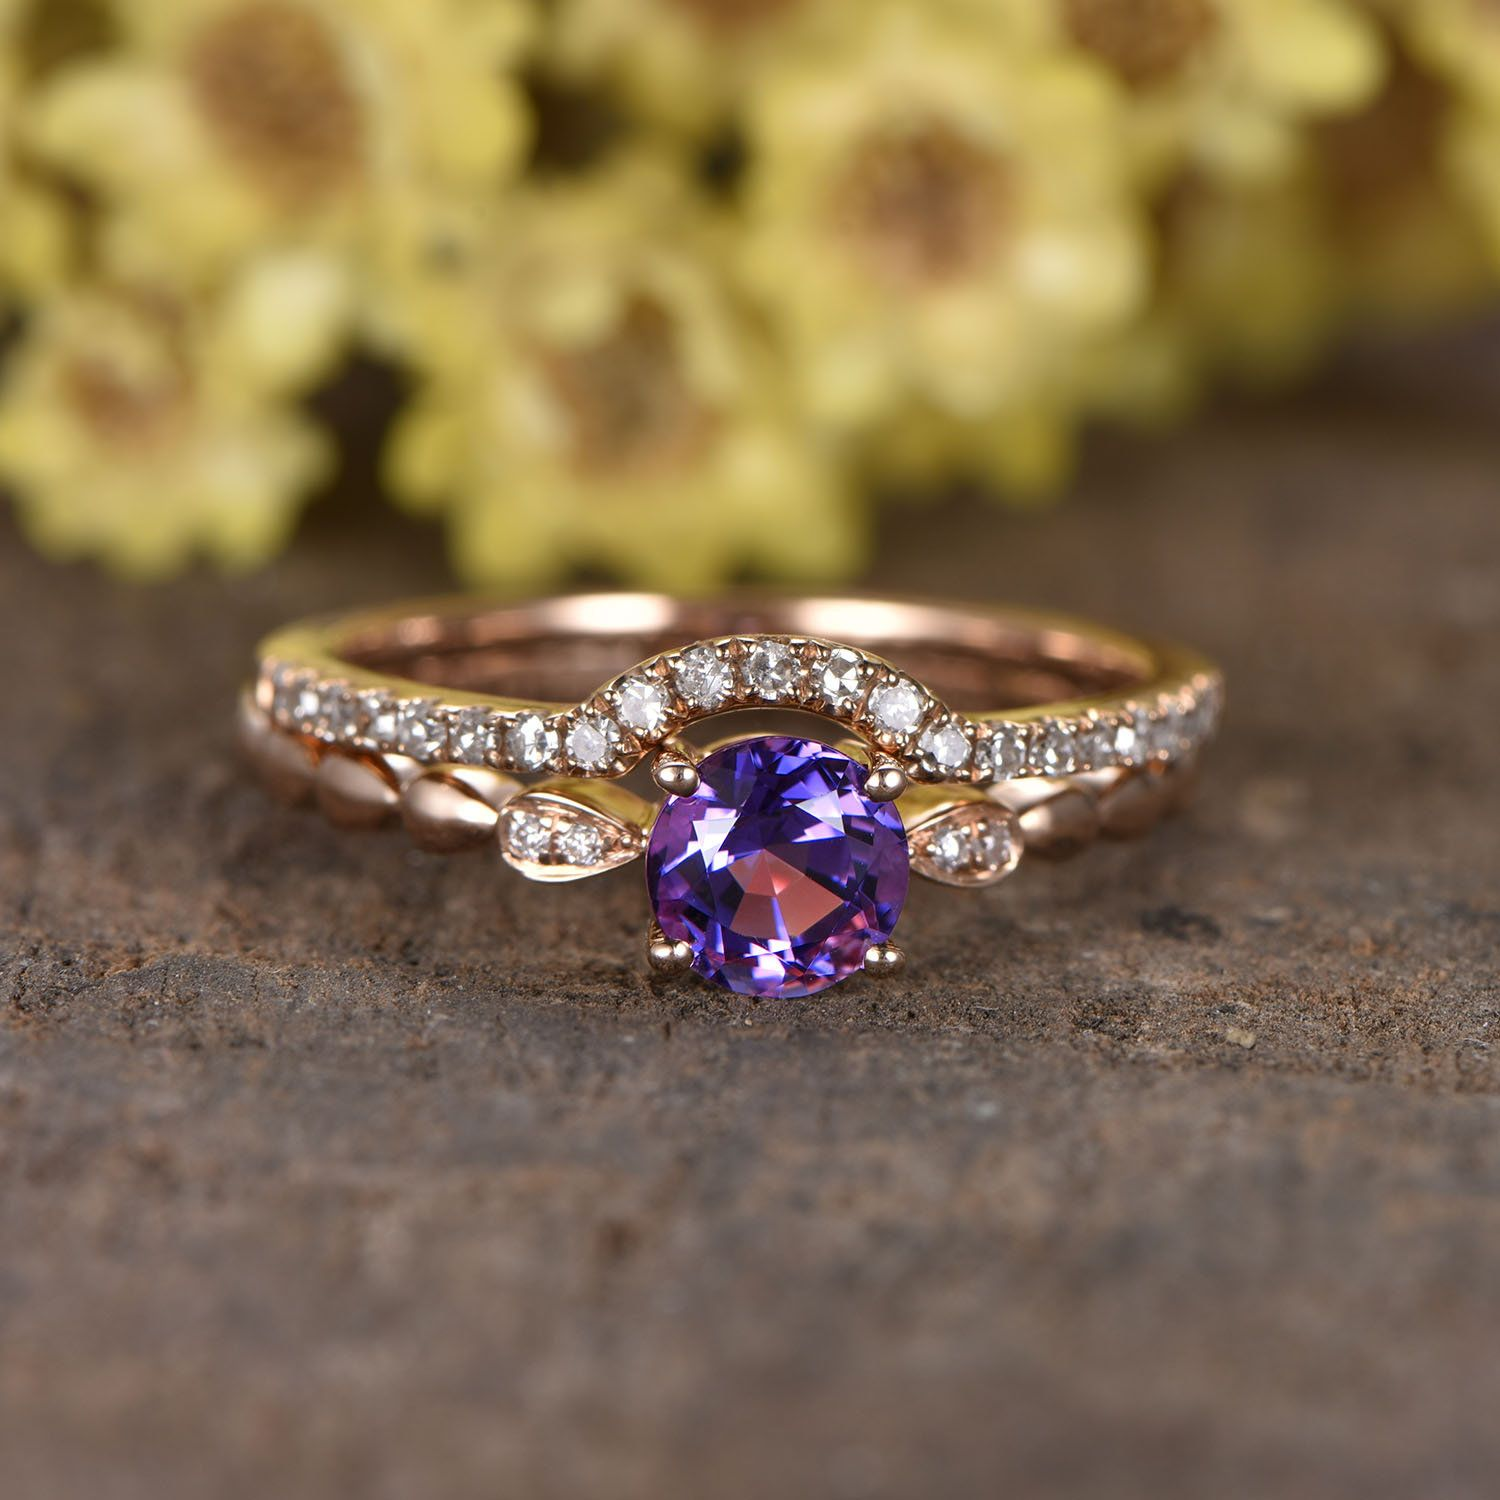 5mm Amethyst Engagement Ring Set Art Deco Solitaire Ring